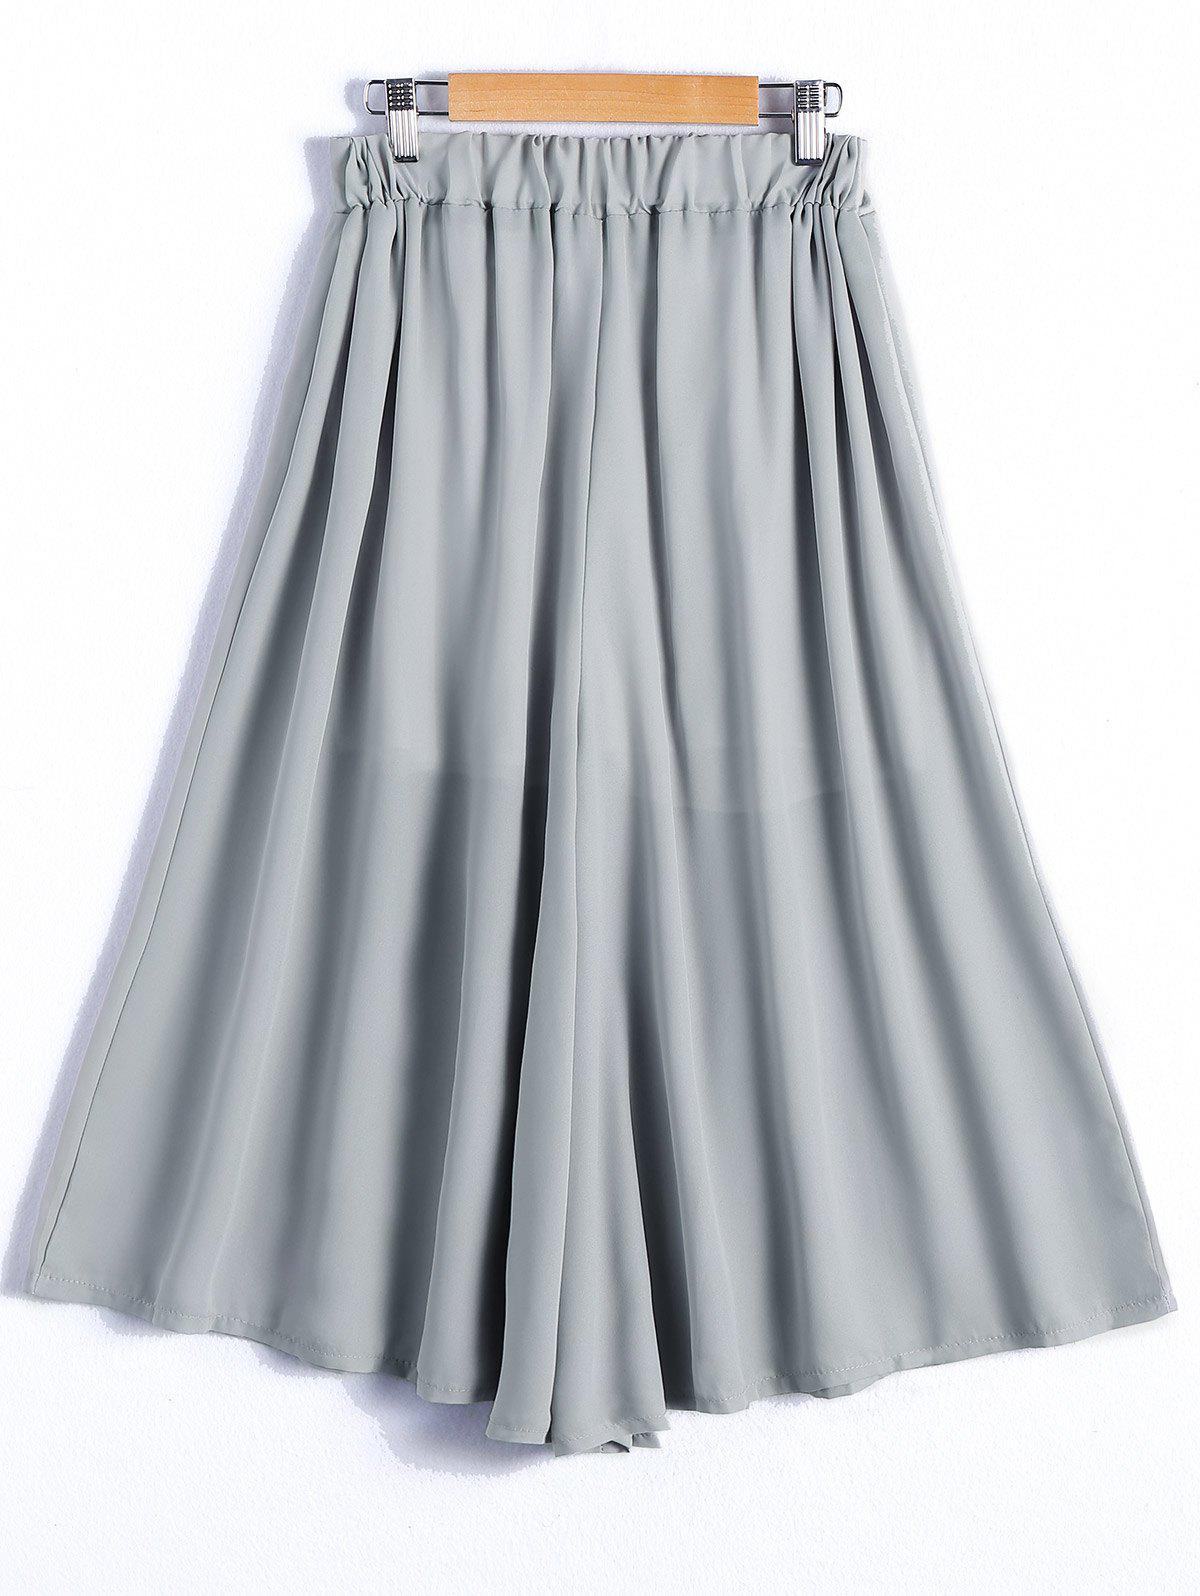 Simple Women's Elastic Waist Wide Leg Pants - GRAY ONE SIZE(FIT SIZE XS TO M)